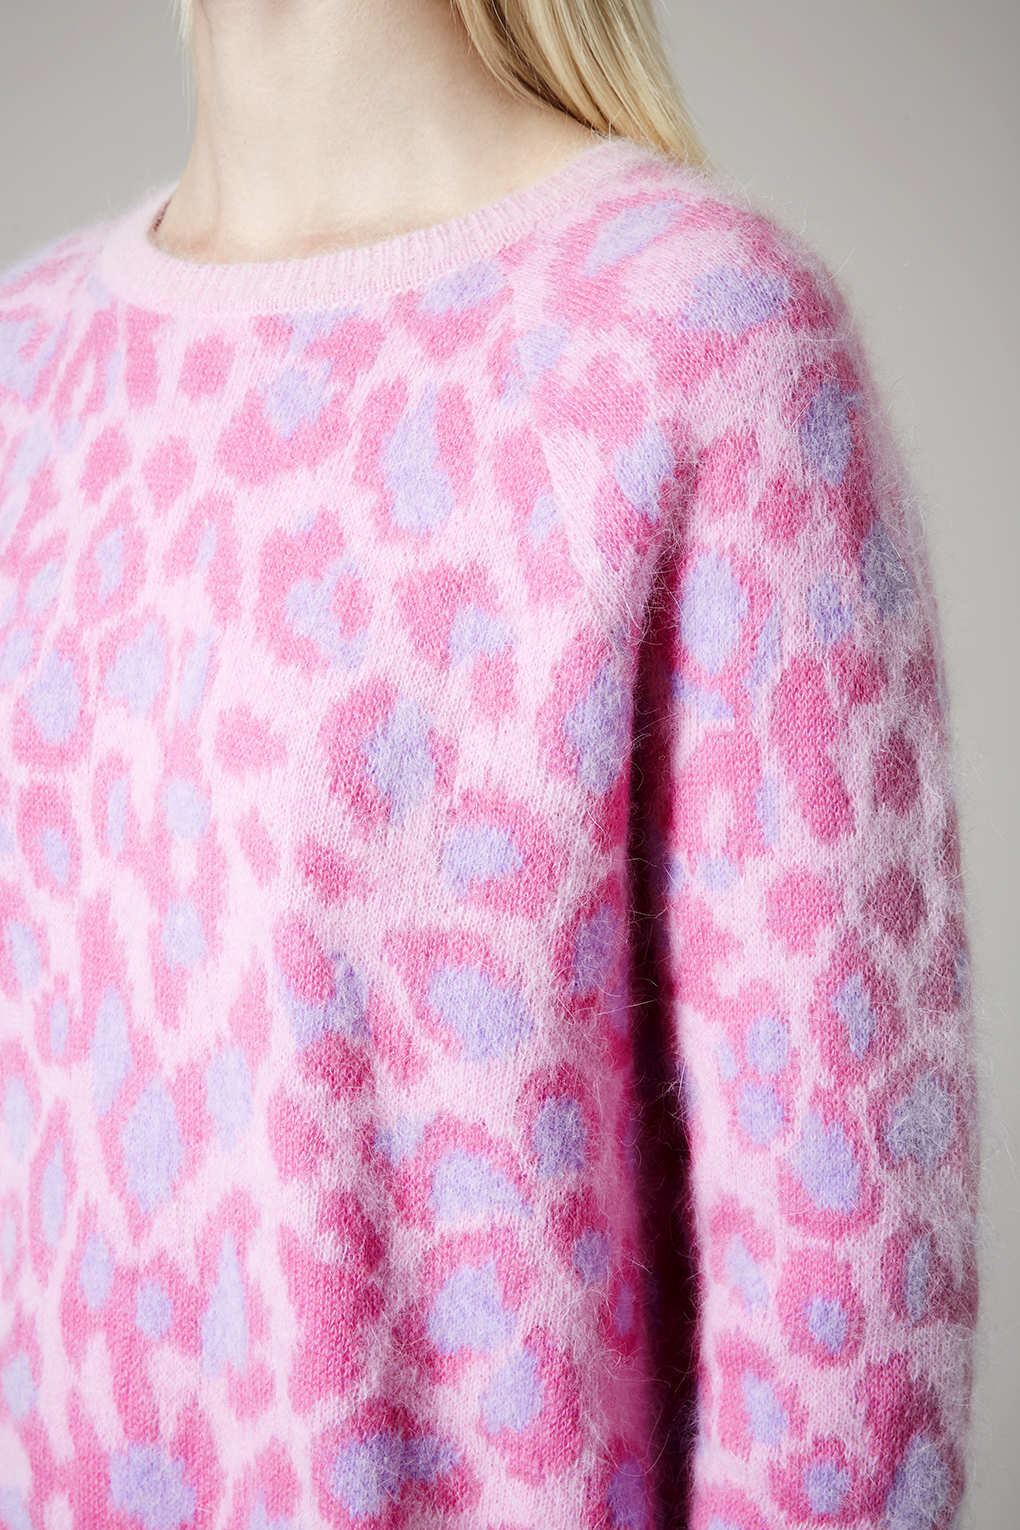 Topshop Leopard Print Fluffy Angora Jumper By Meadham Kirchhoff in ...